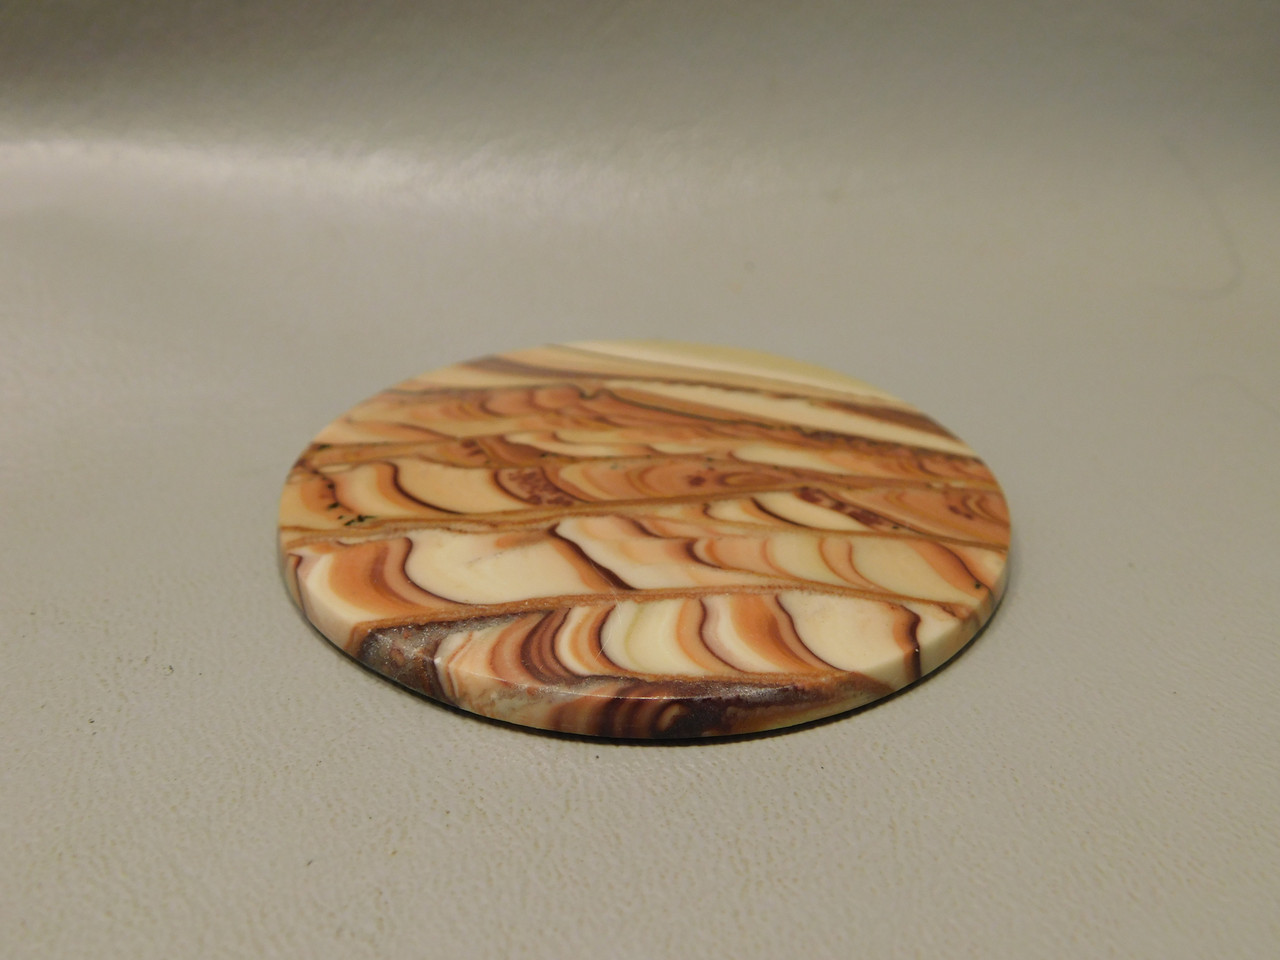 Wave Dolomite Large Cabochon Stone 61 mm 2.4 inches Round XL1